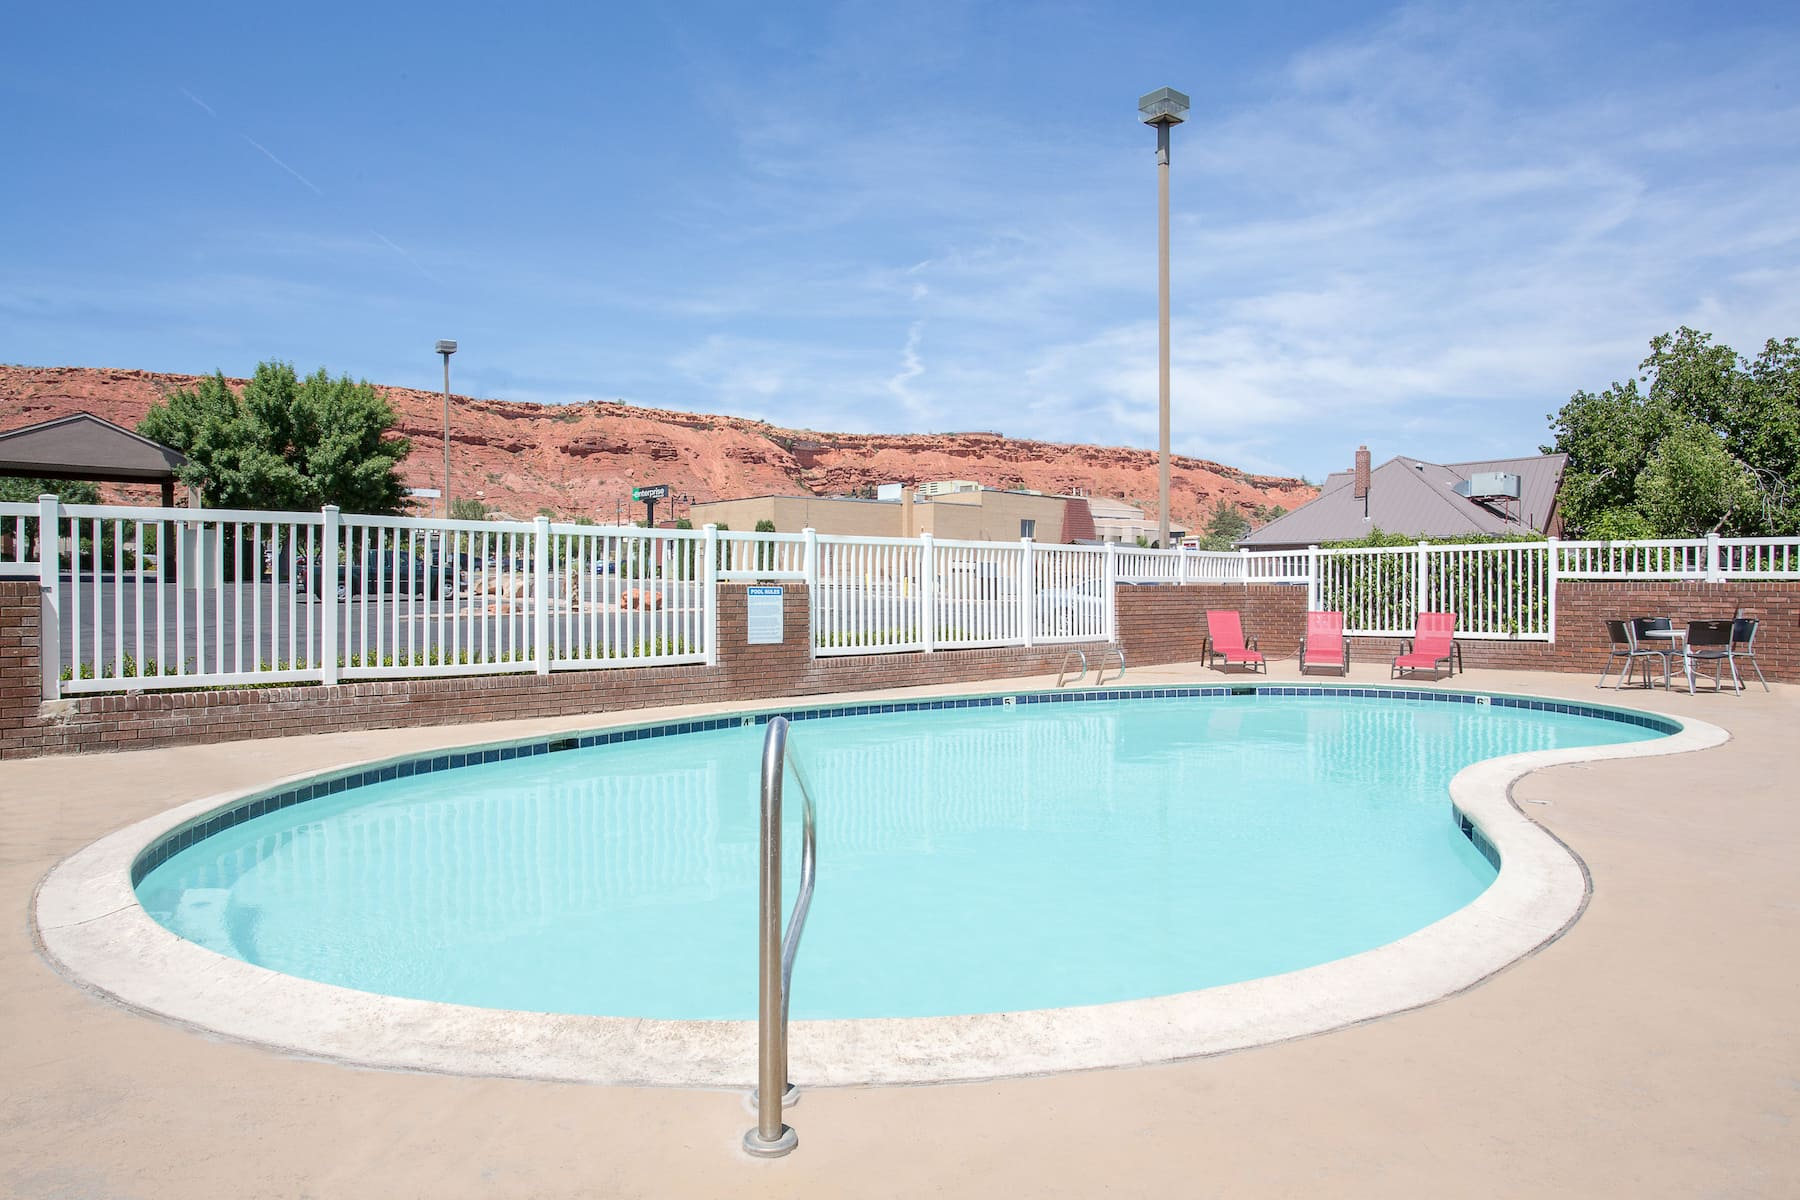 Super 8 By Wyndham St George Ut Saint George Ut Hotels